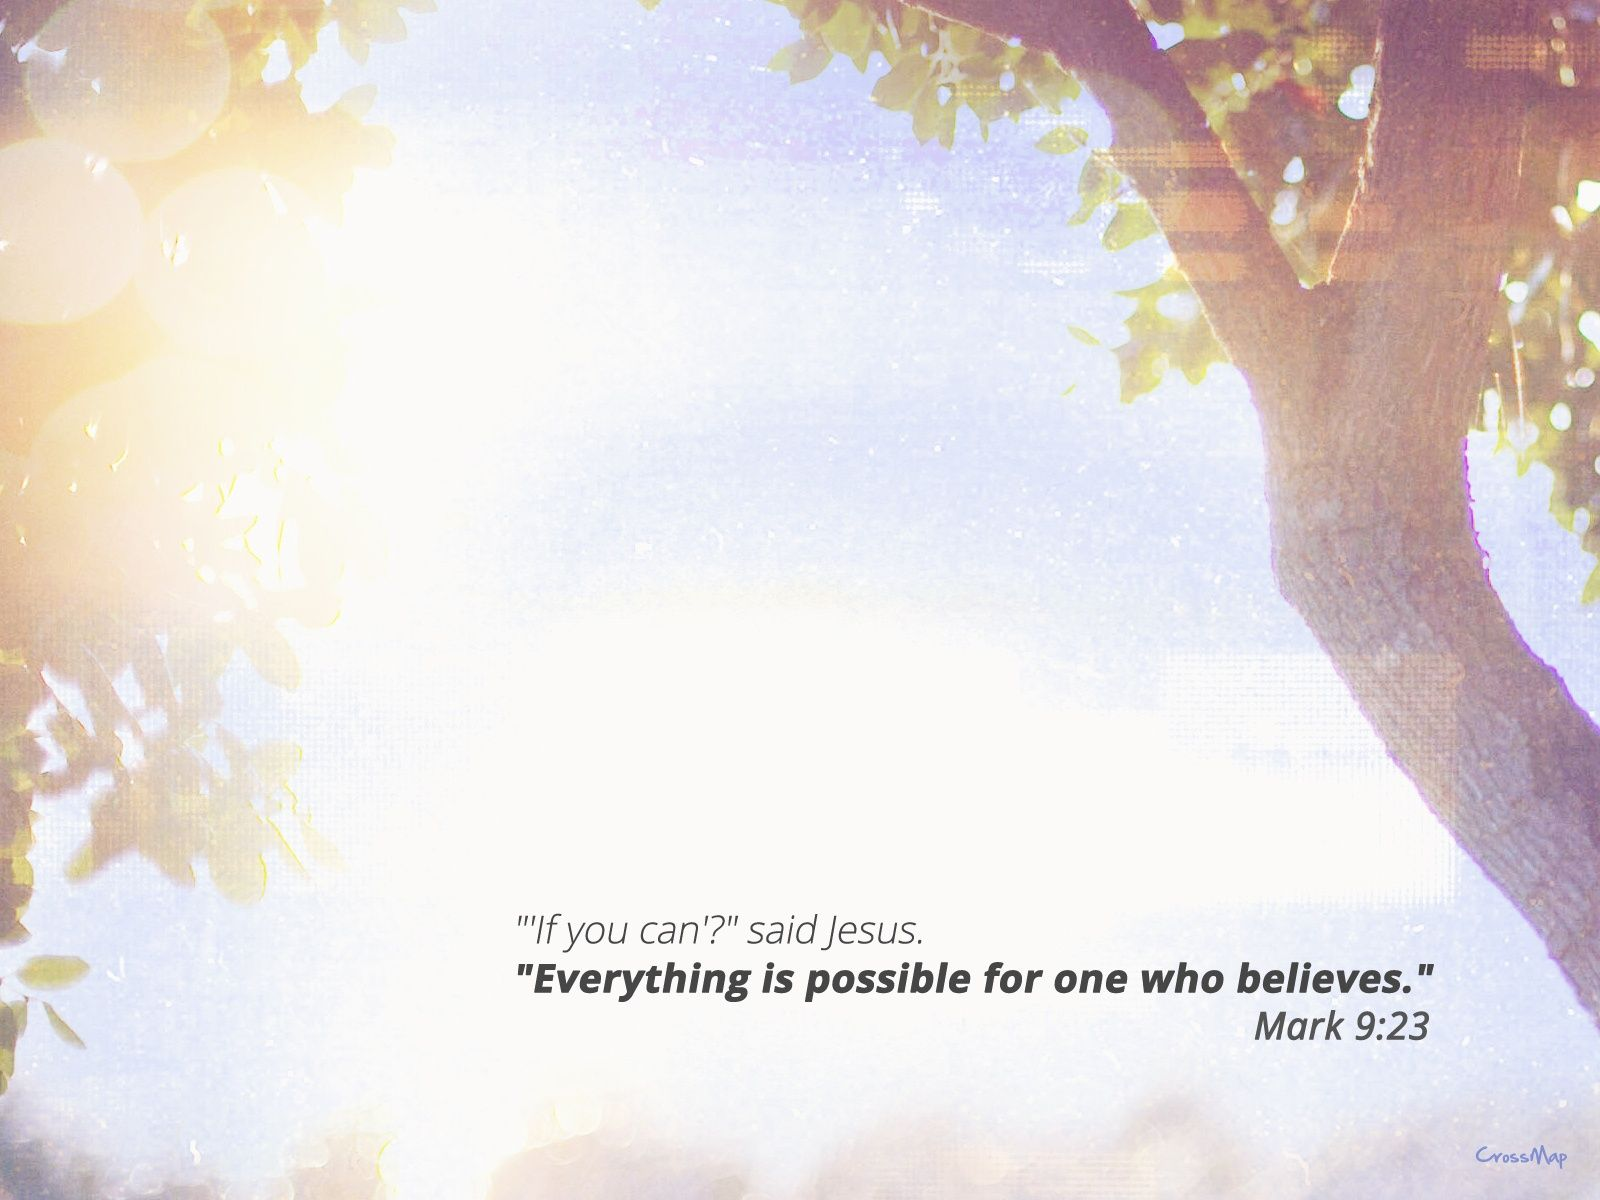 Everything is possible Christian Photographs Crossmap 1600x1200